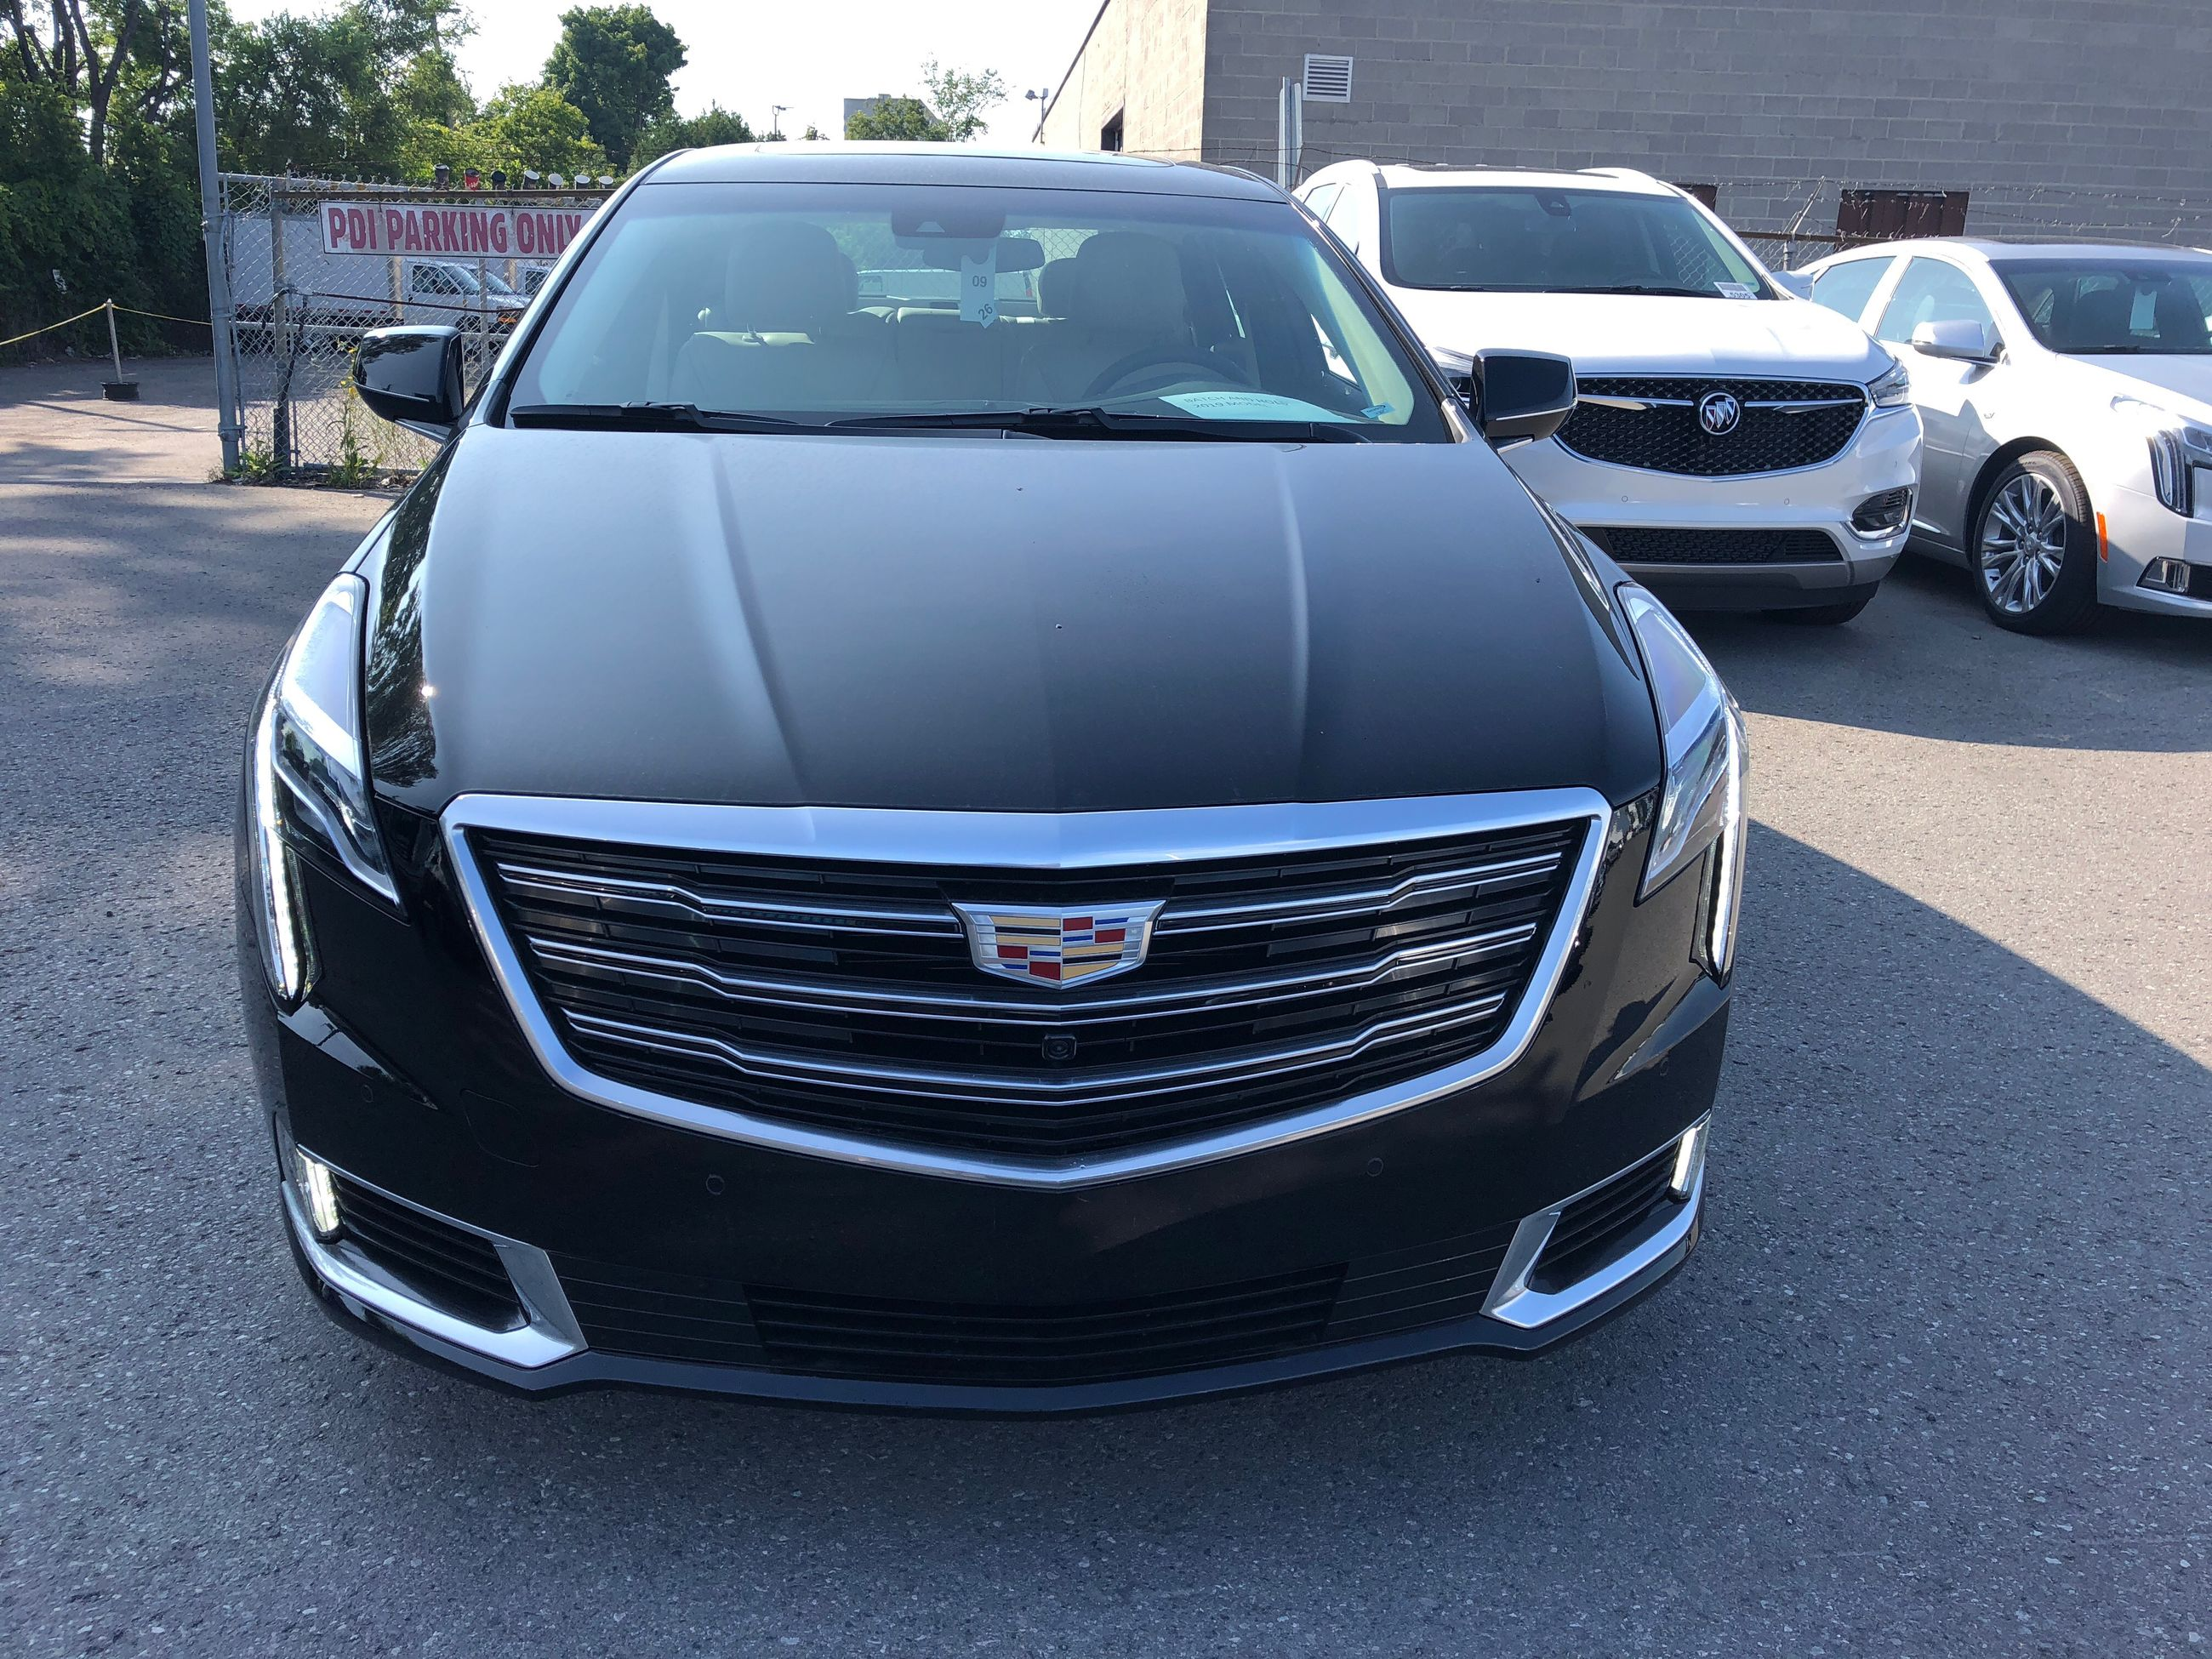 New 2019 Cadillac XTS LUXURY for Sale - $58759.0 ...